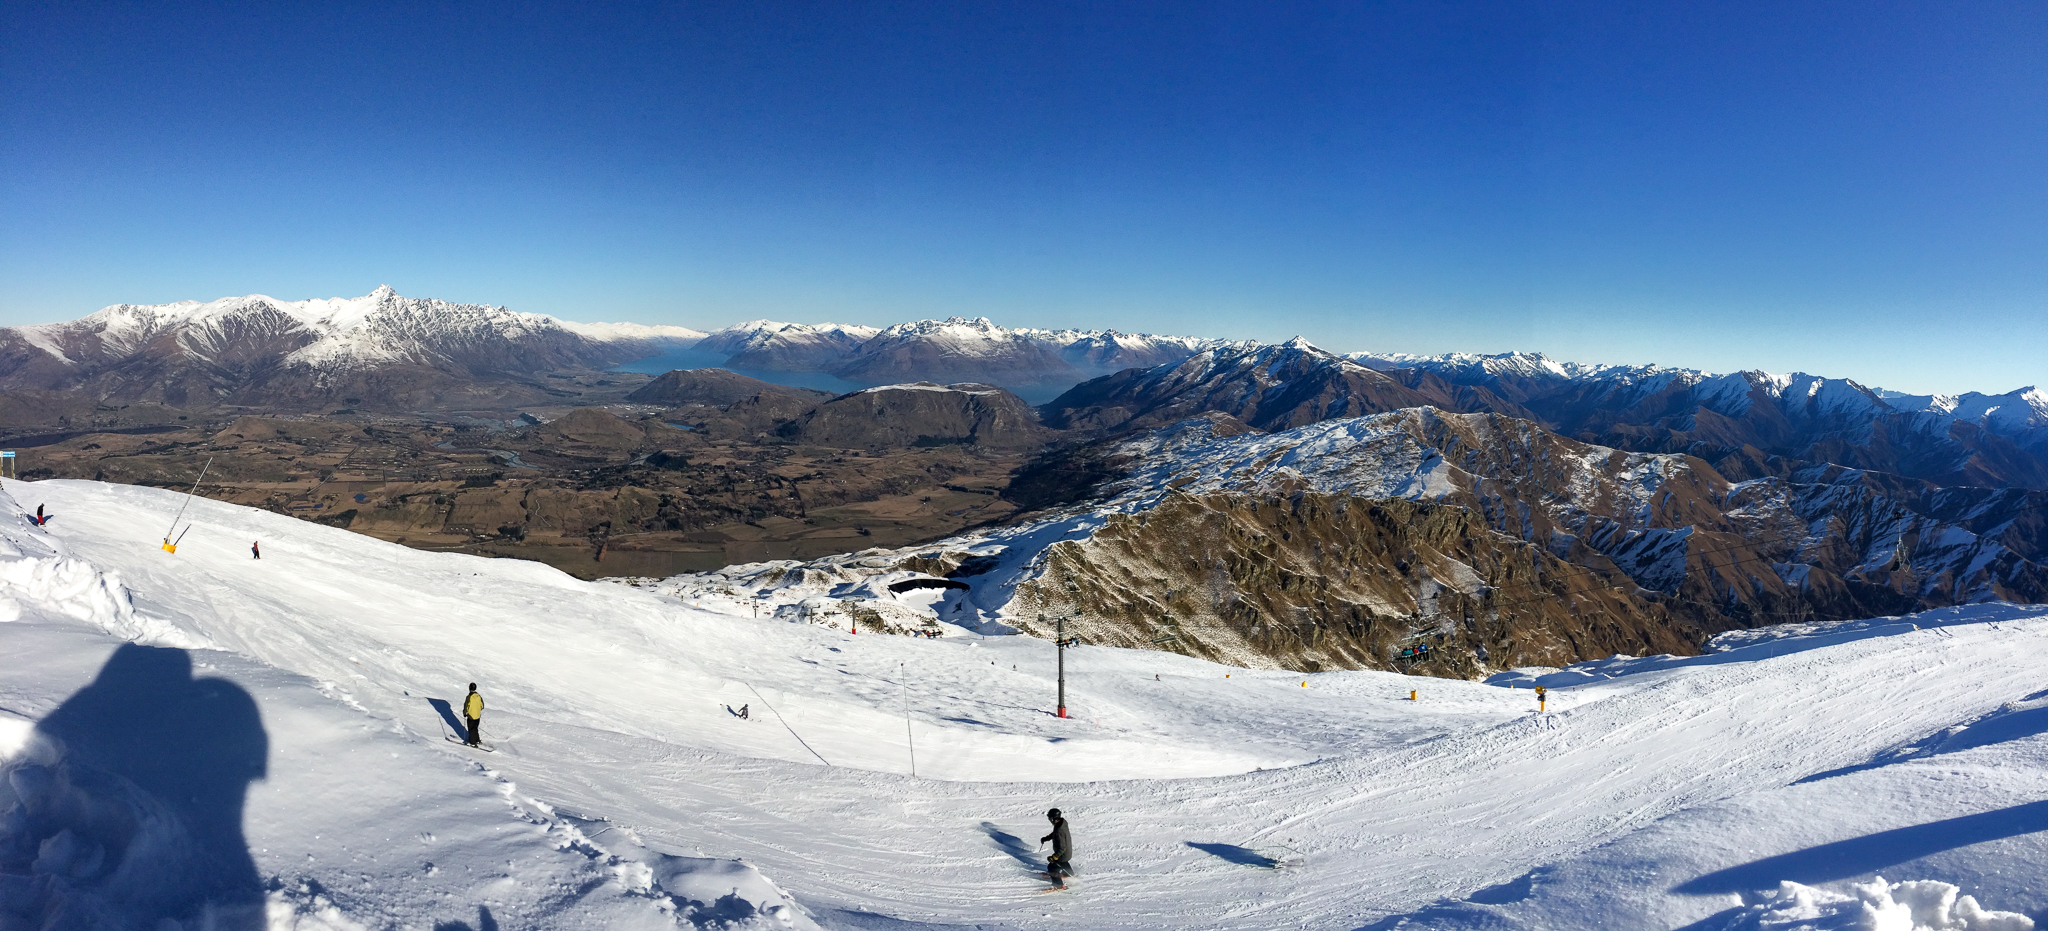 The views of Arrowtown and Queenstown from Coronet Peak